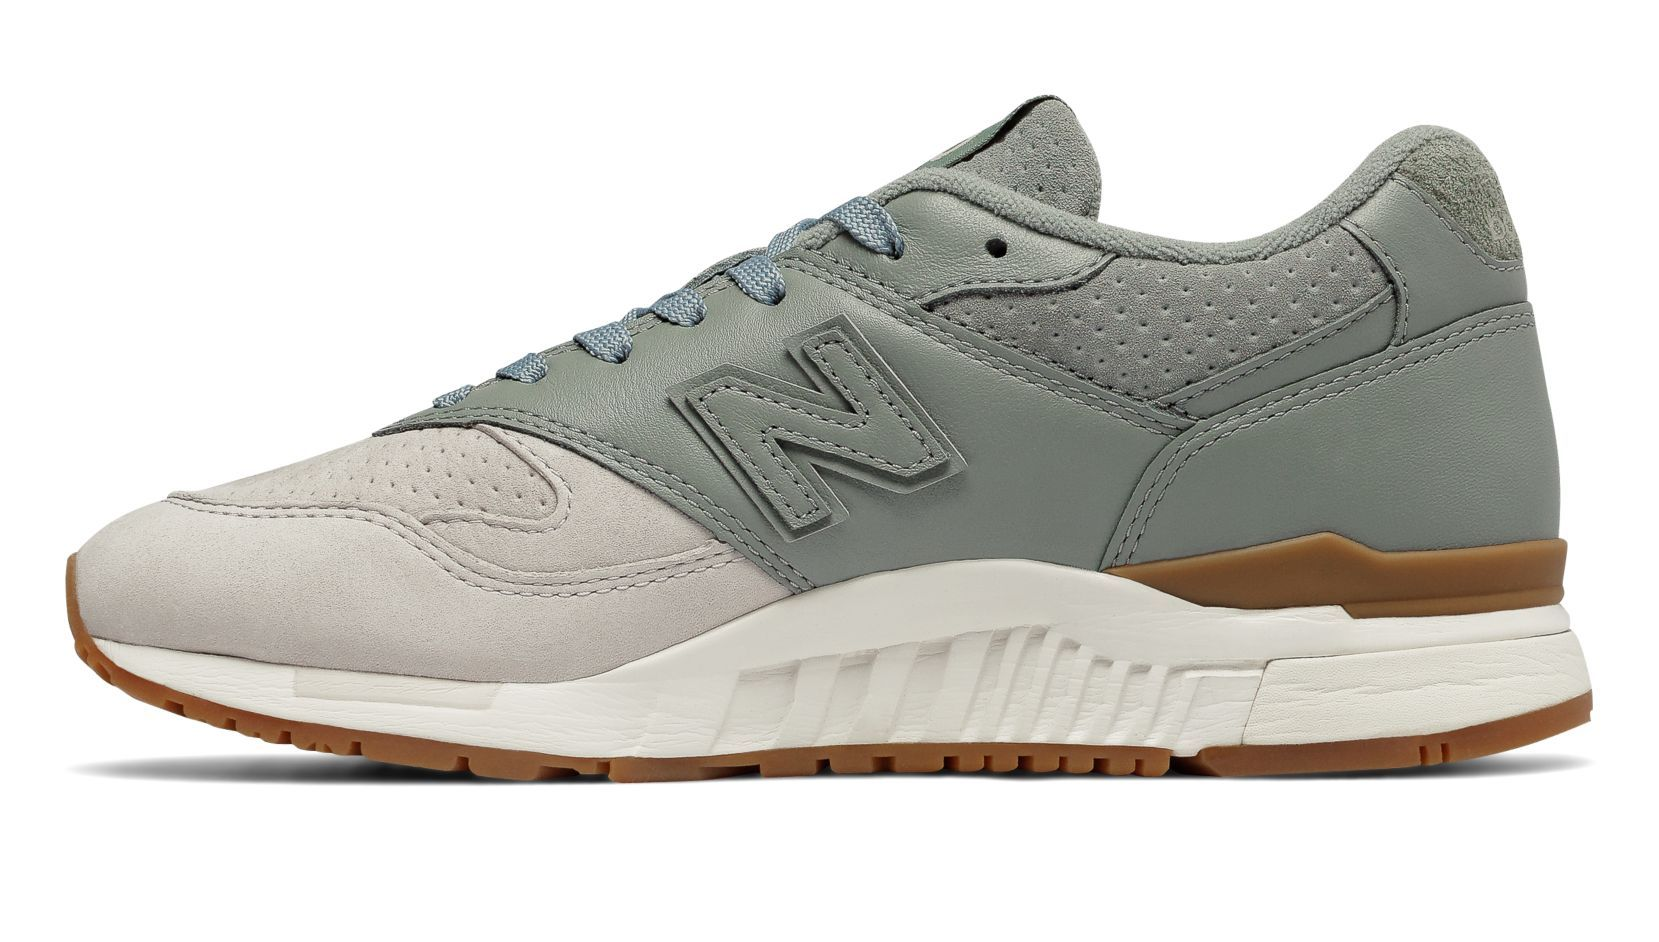 New Balance 840 Suede